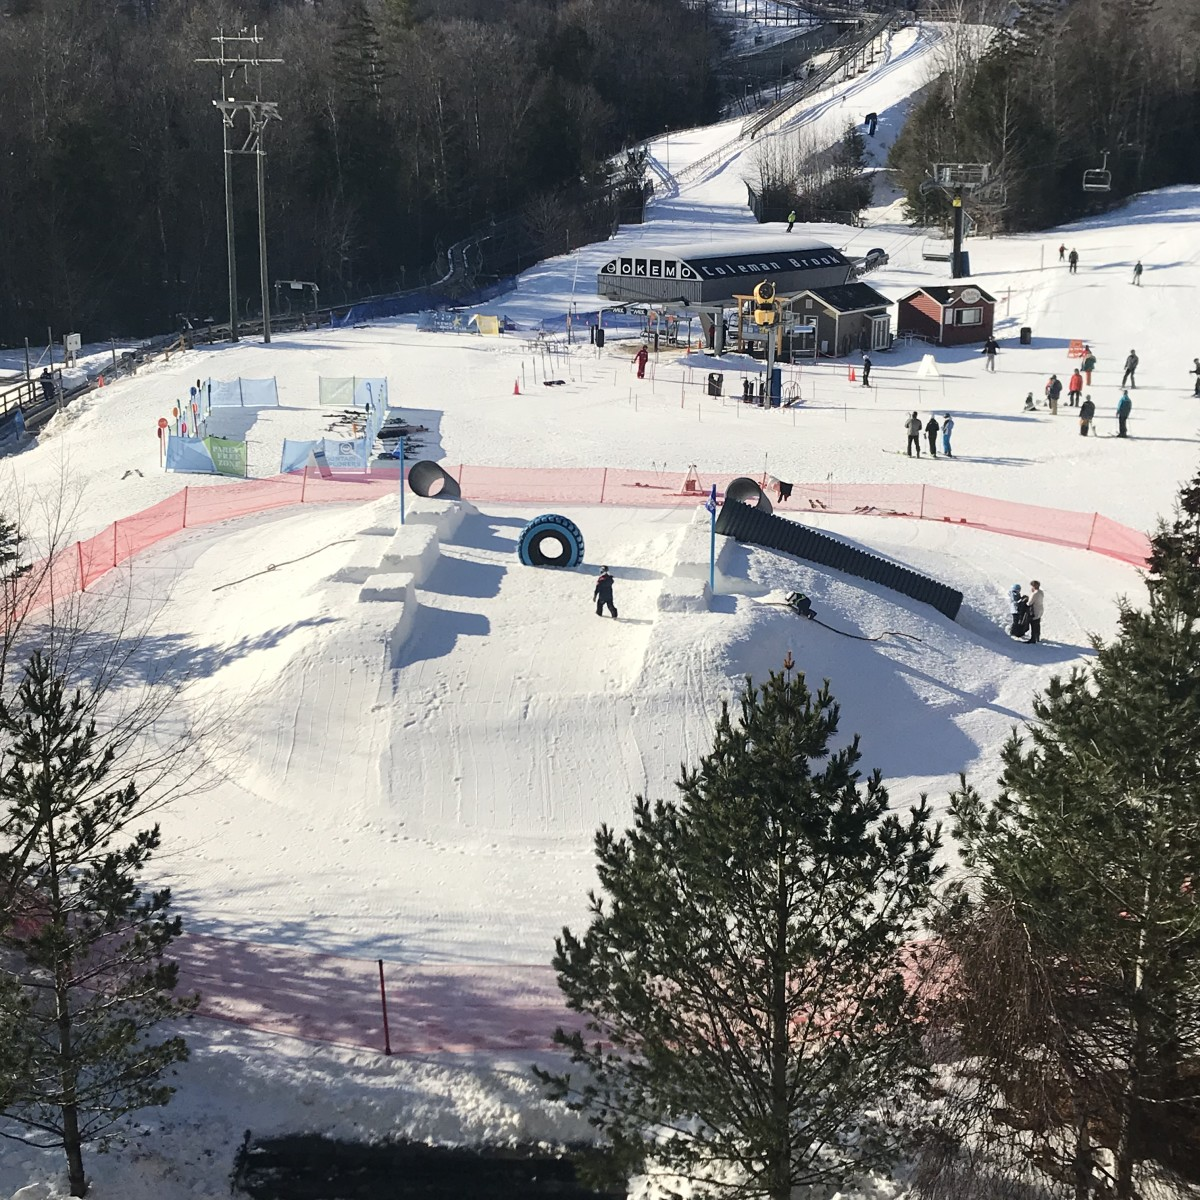 okemo snow playground